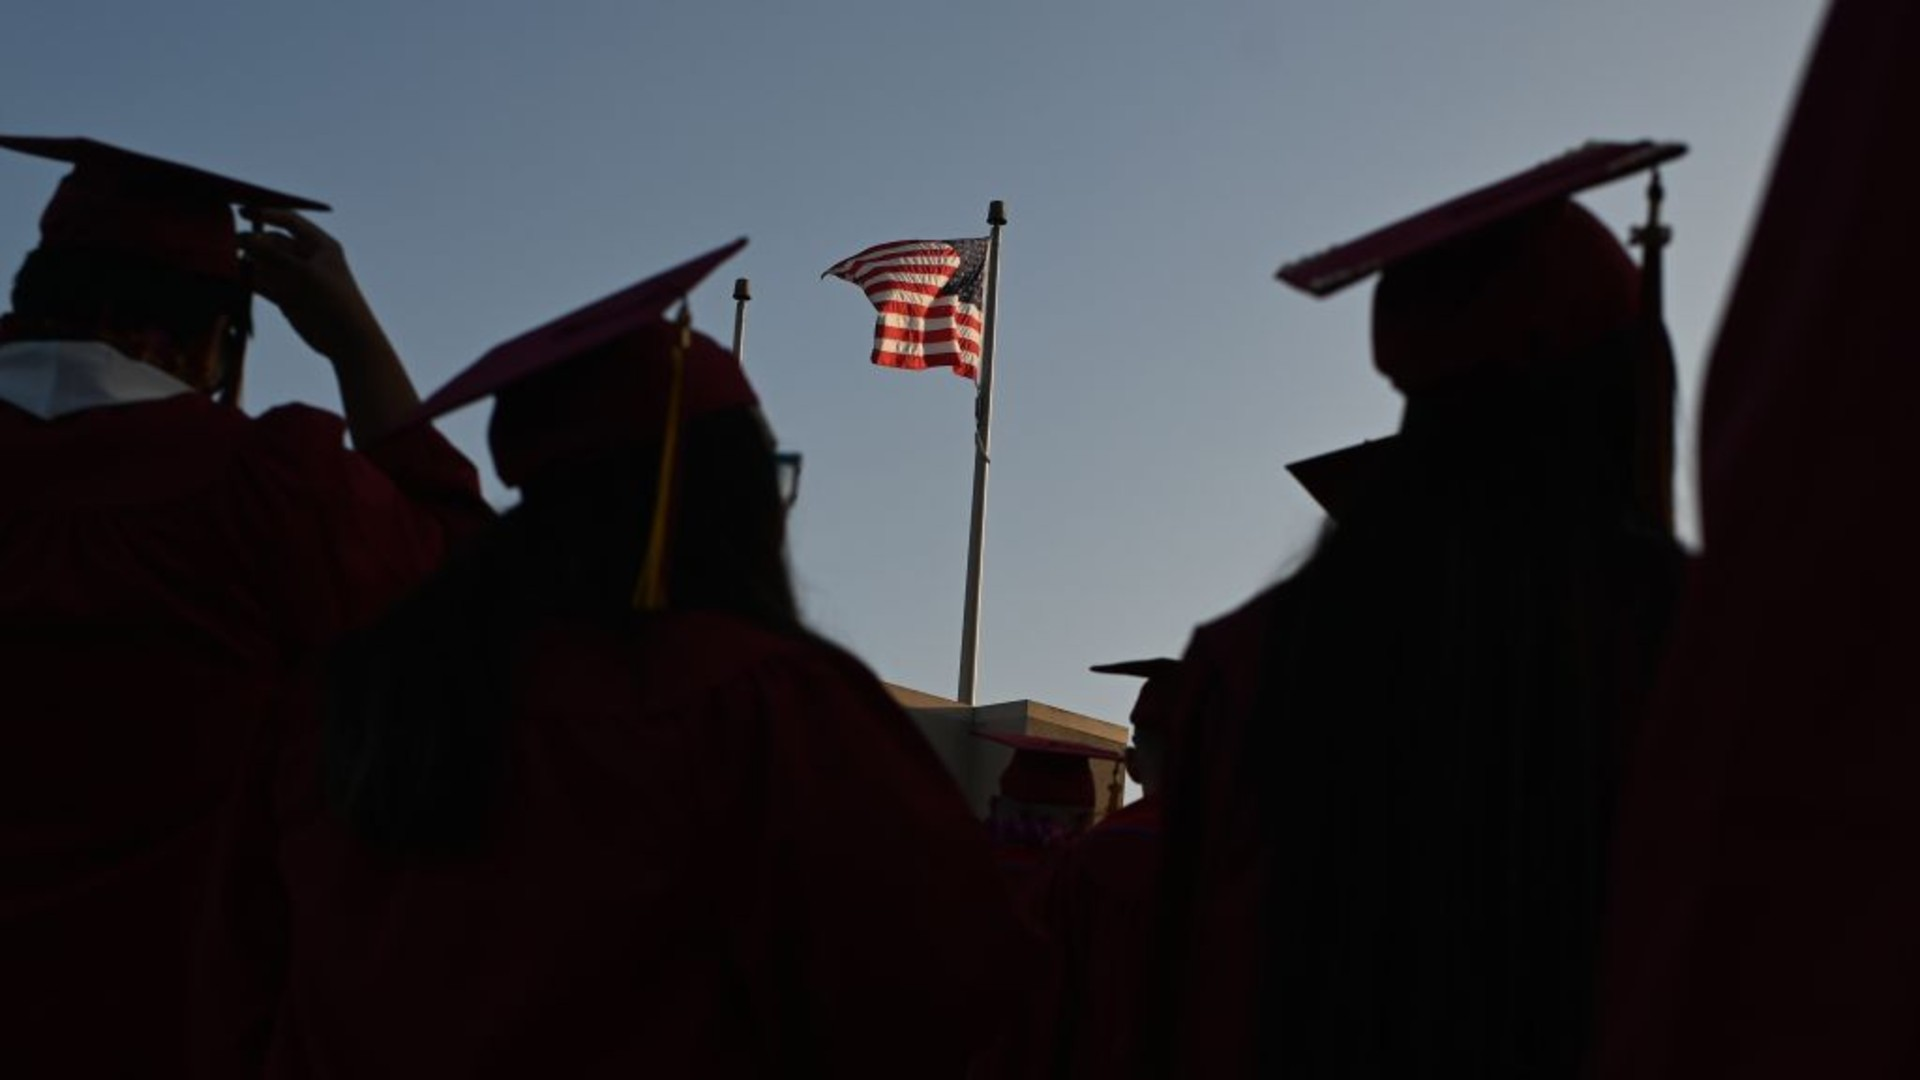 A US flag flies above a building as students earning degrees at Pasadena City College participate in the graduation ceremony, June 14, 2019, in Pasadena, California. (ROBYN BECK/AFP via Getty Images)